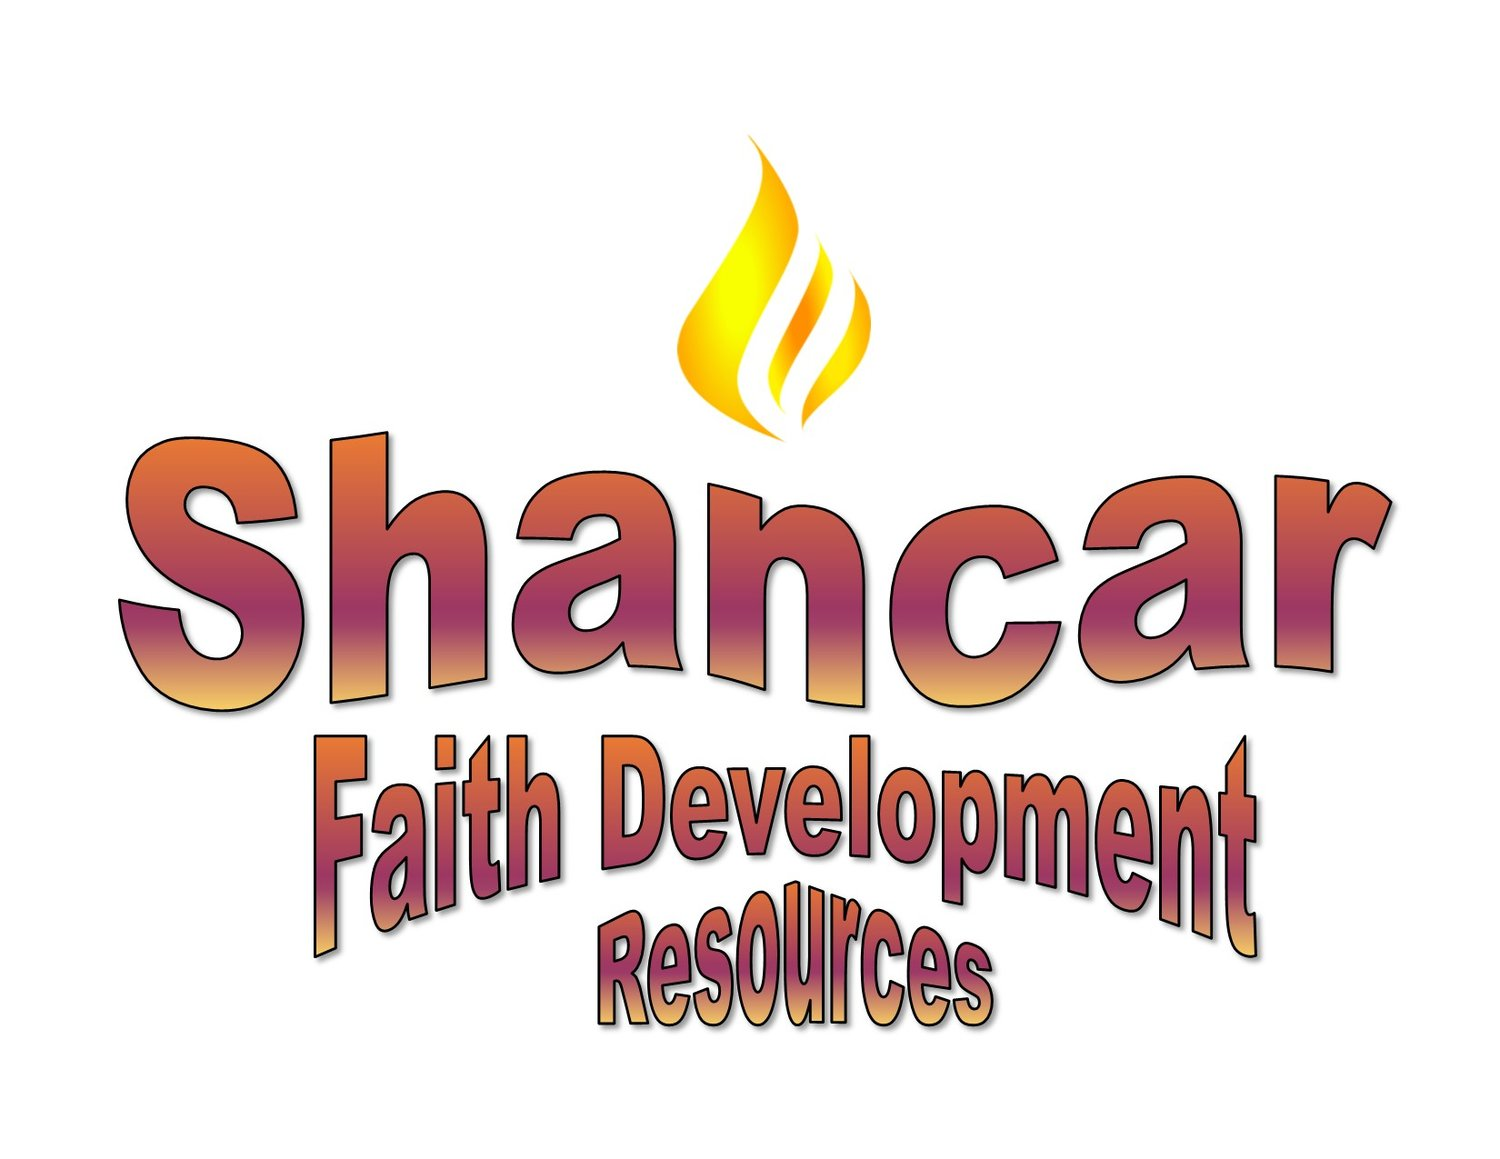 Shancar Faith Development Resources